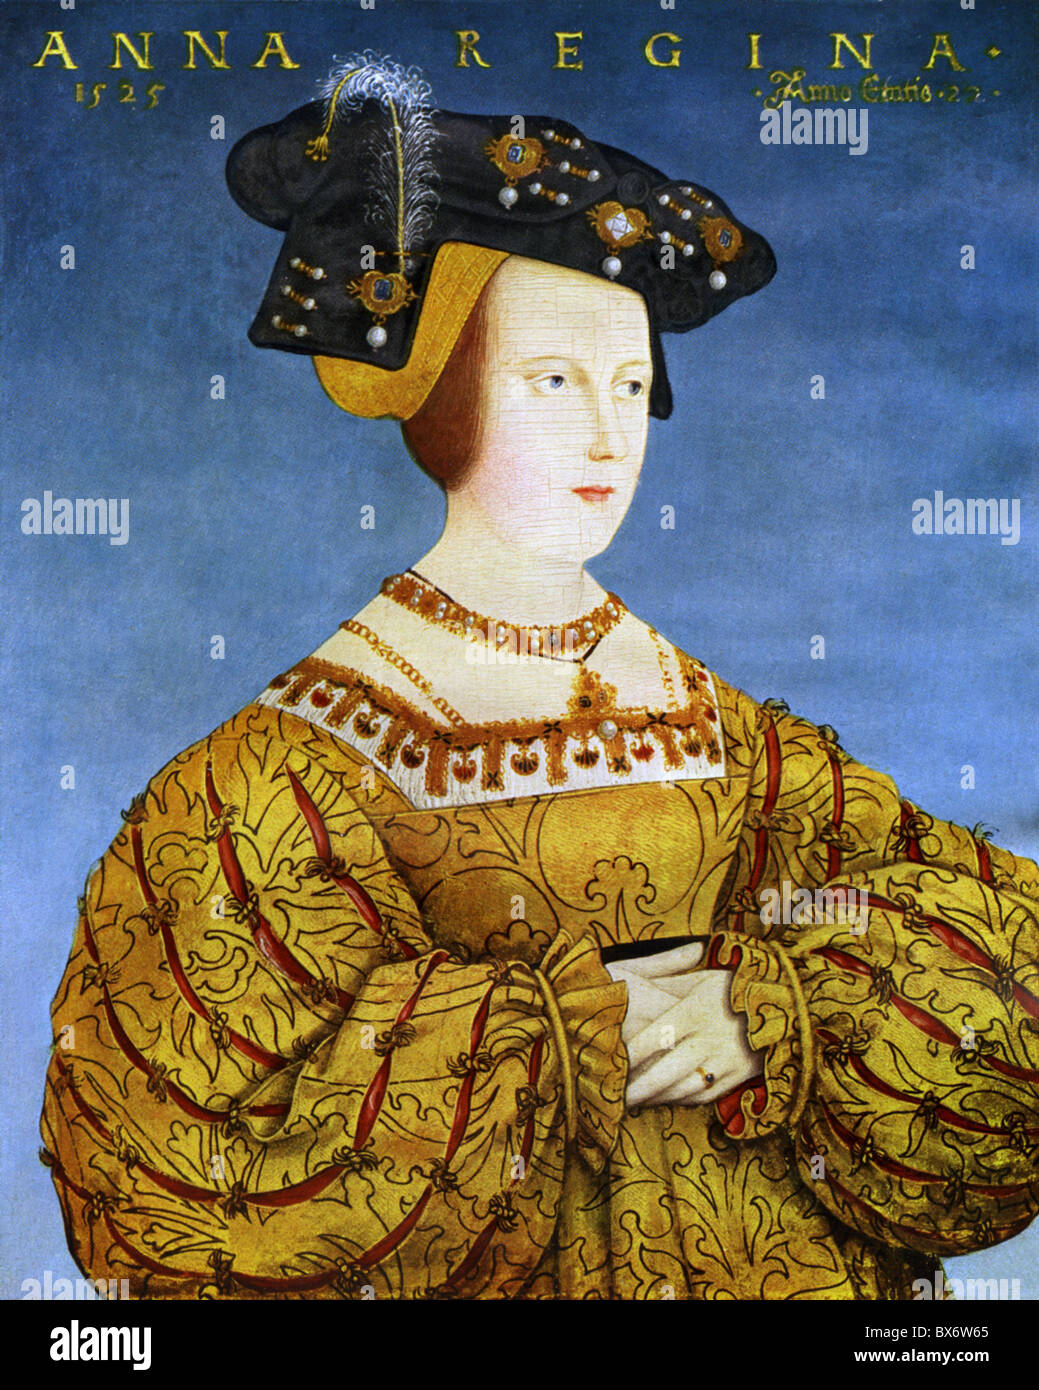 Anna, 23.7.1503 - 27.1.1547, Queen of the Romans 5.1.1531 - 27.1.1547, portrait, print after painting by Hans Maler, Stock Foto